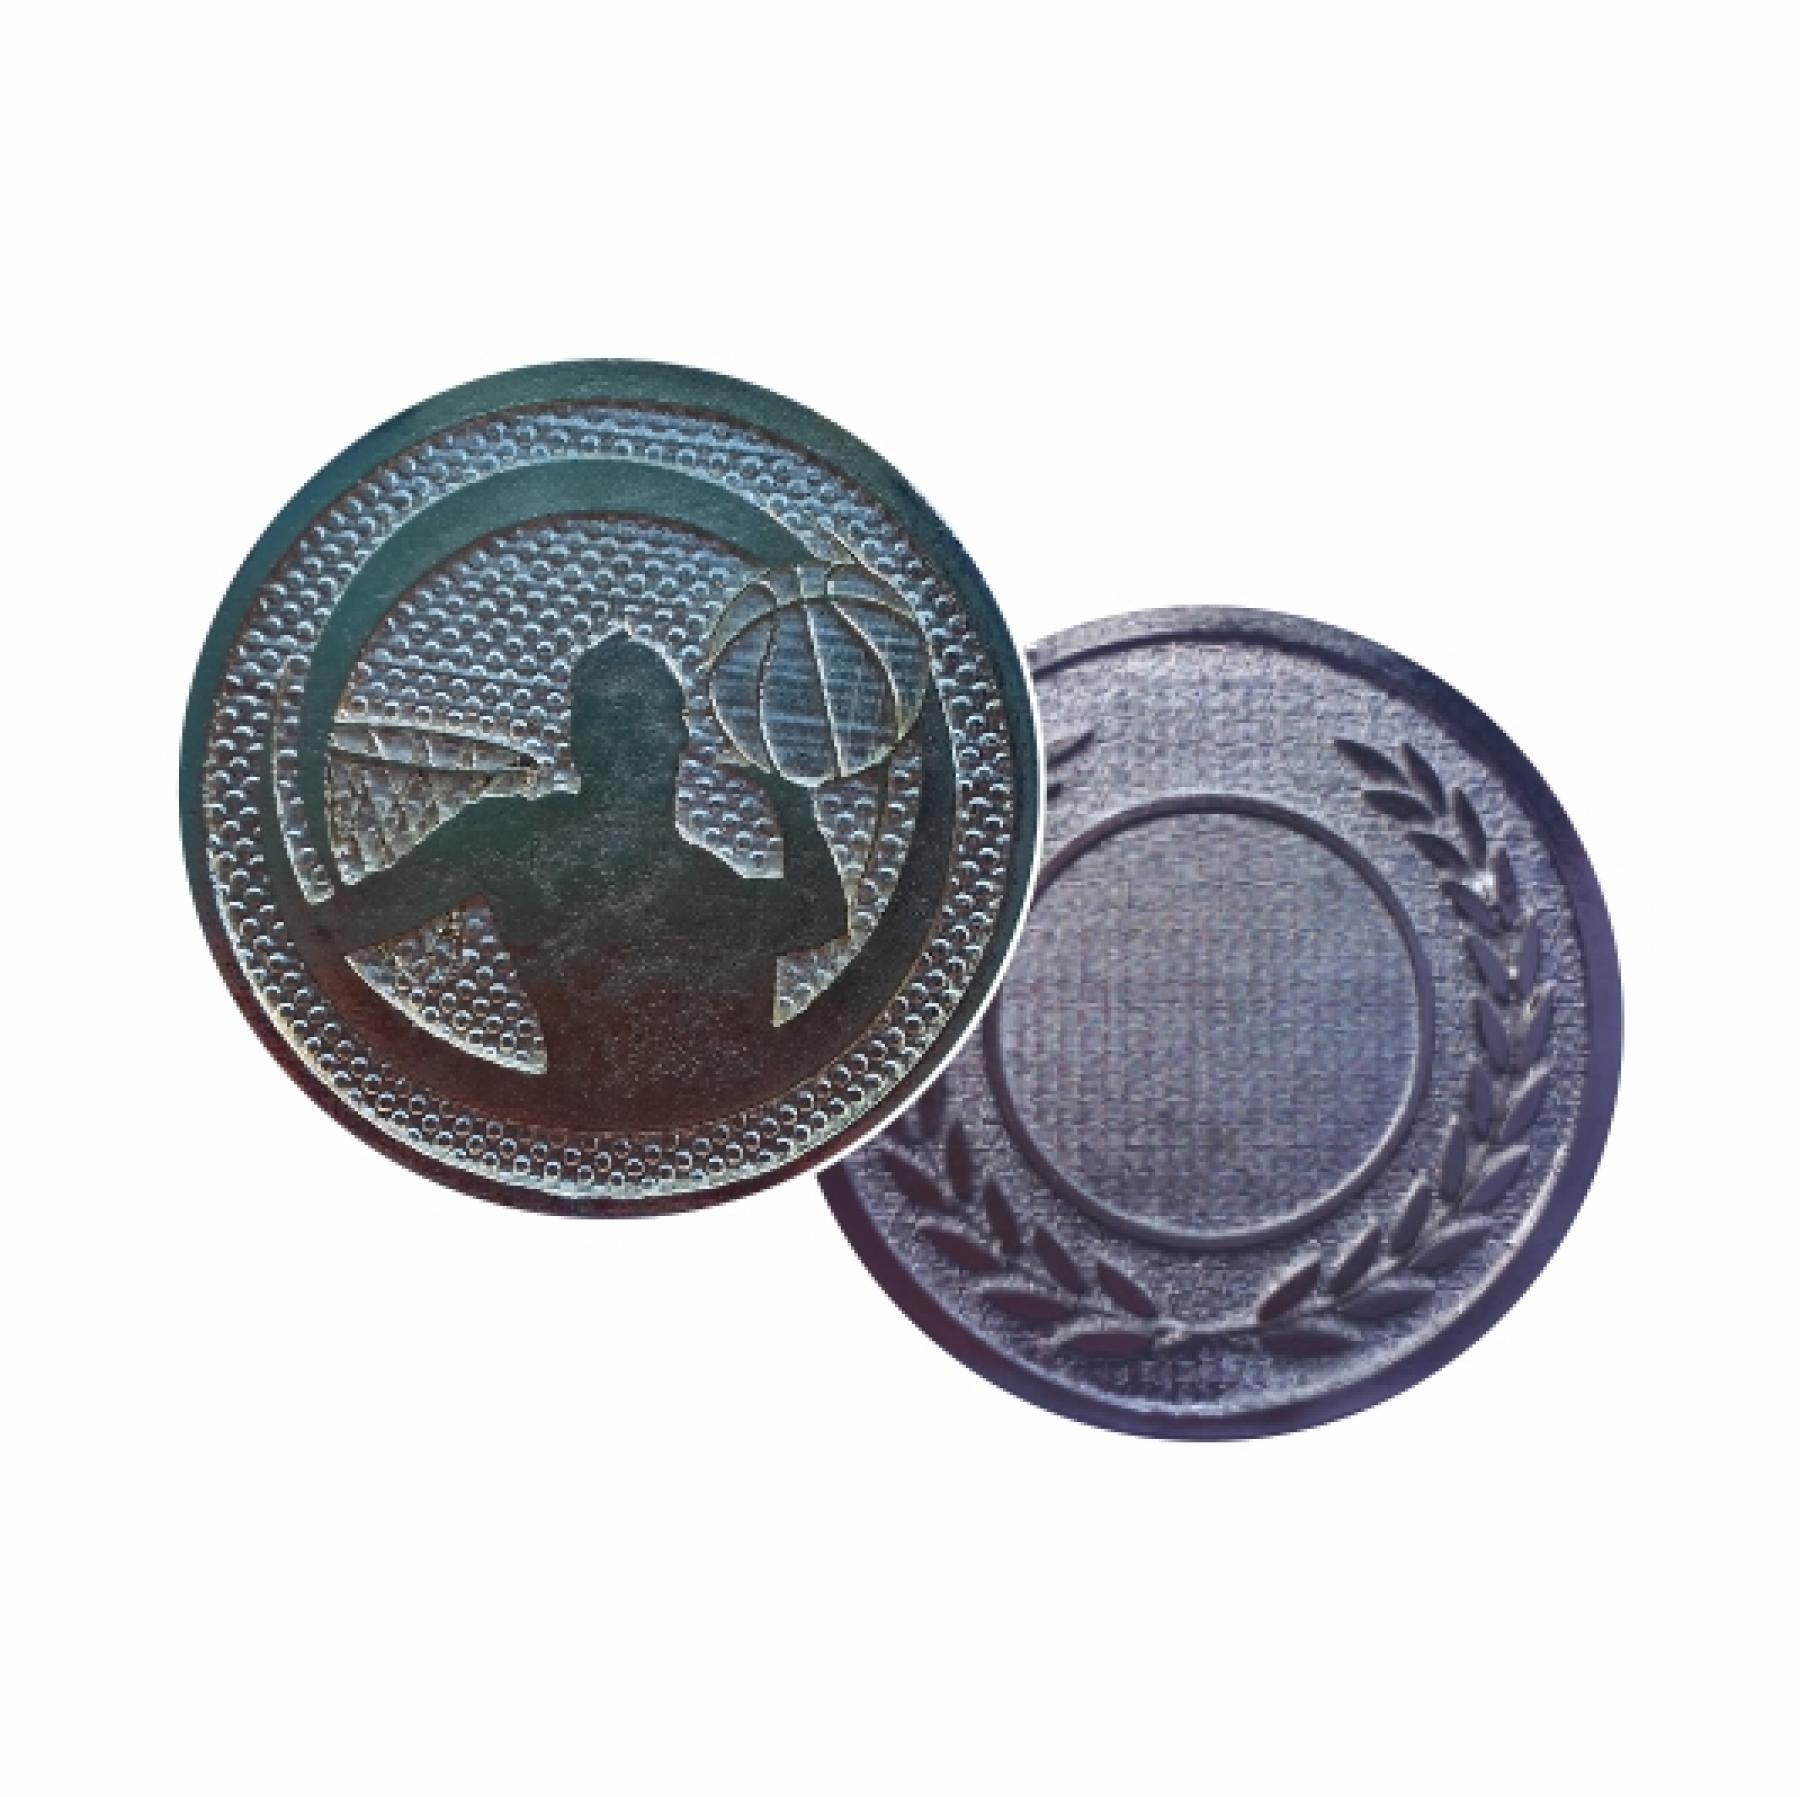 Xco Plated Medals Basketball Silver